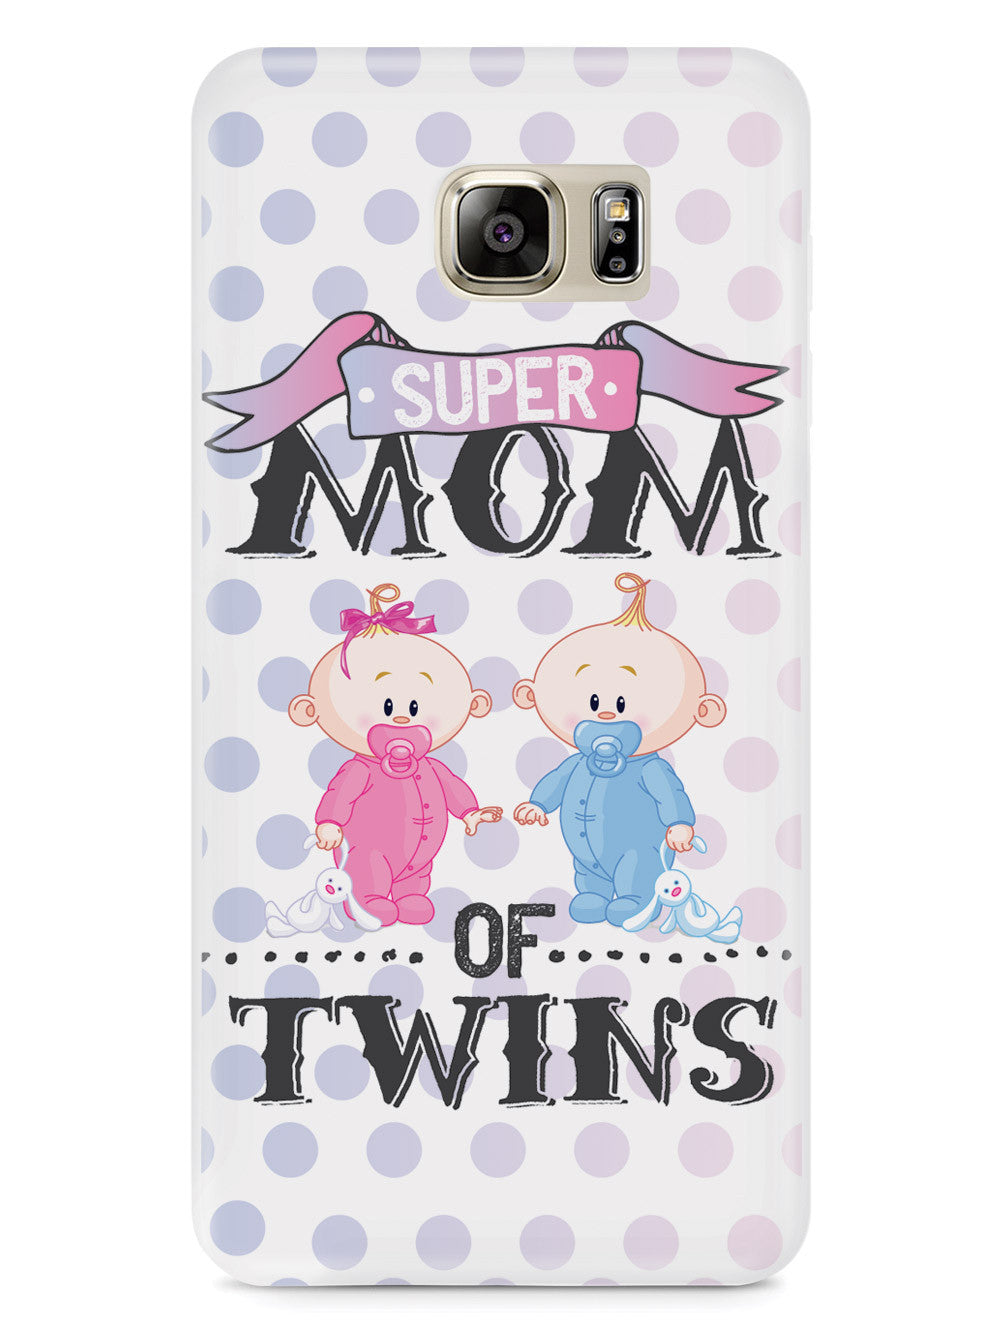 Super Mom of Twins - Girl and Boy Case